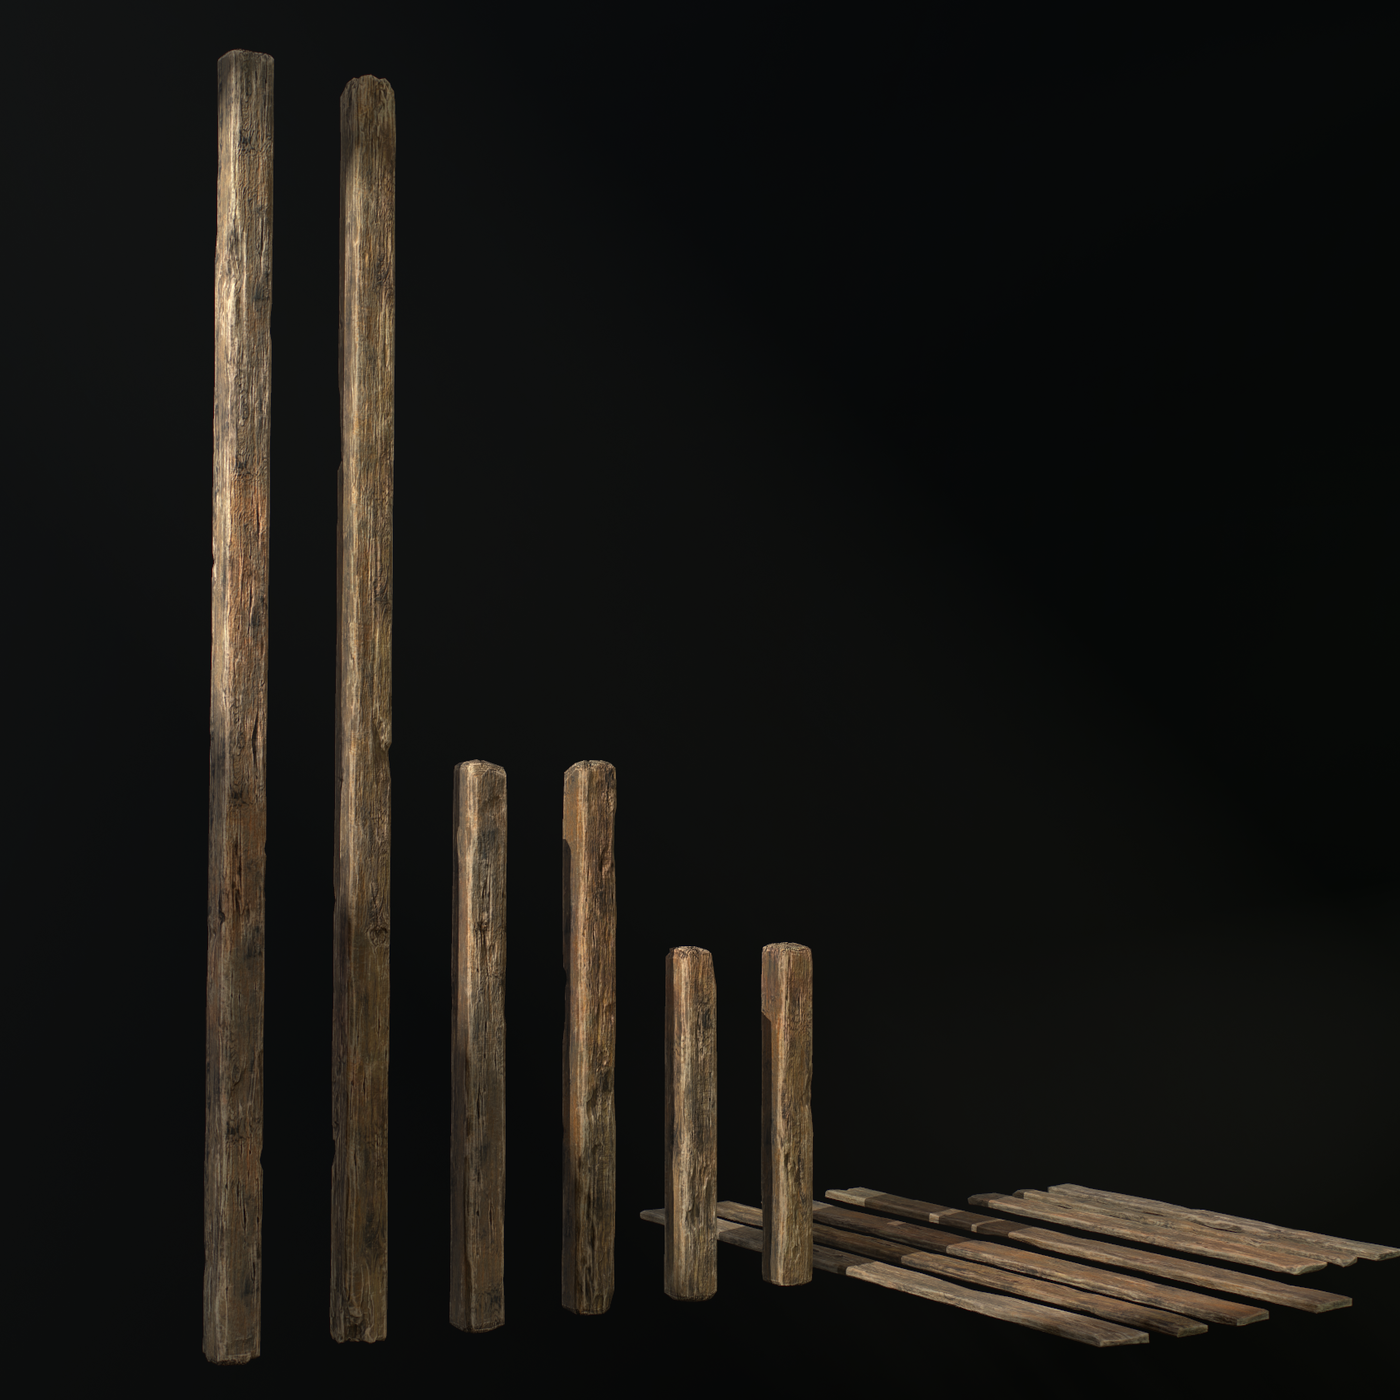 Wooden balks and planks